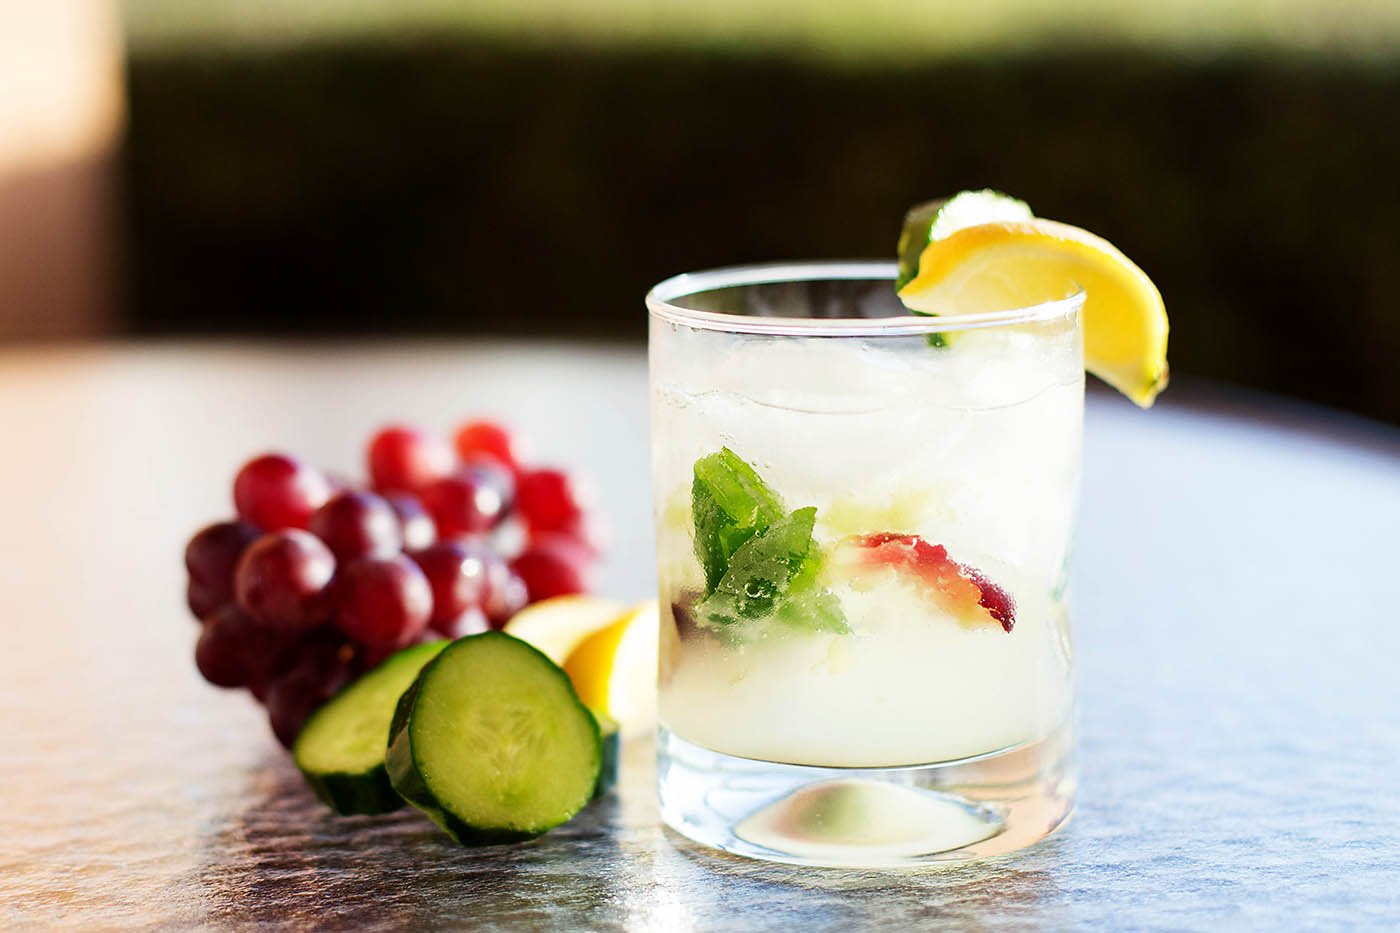 Elevate a Regular Day with this Fresh, Simple Cocktail